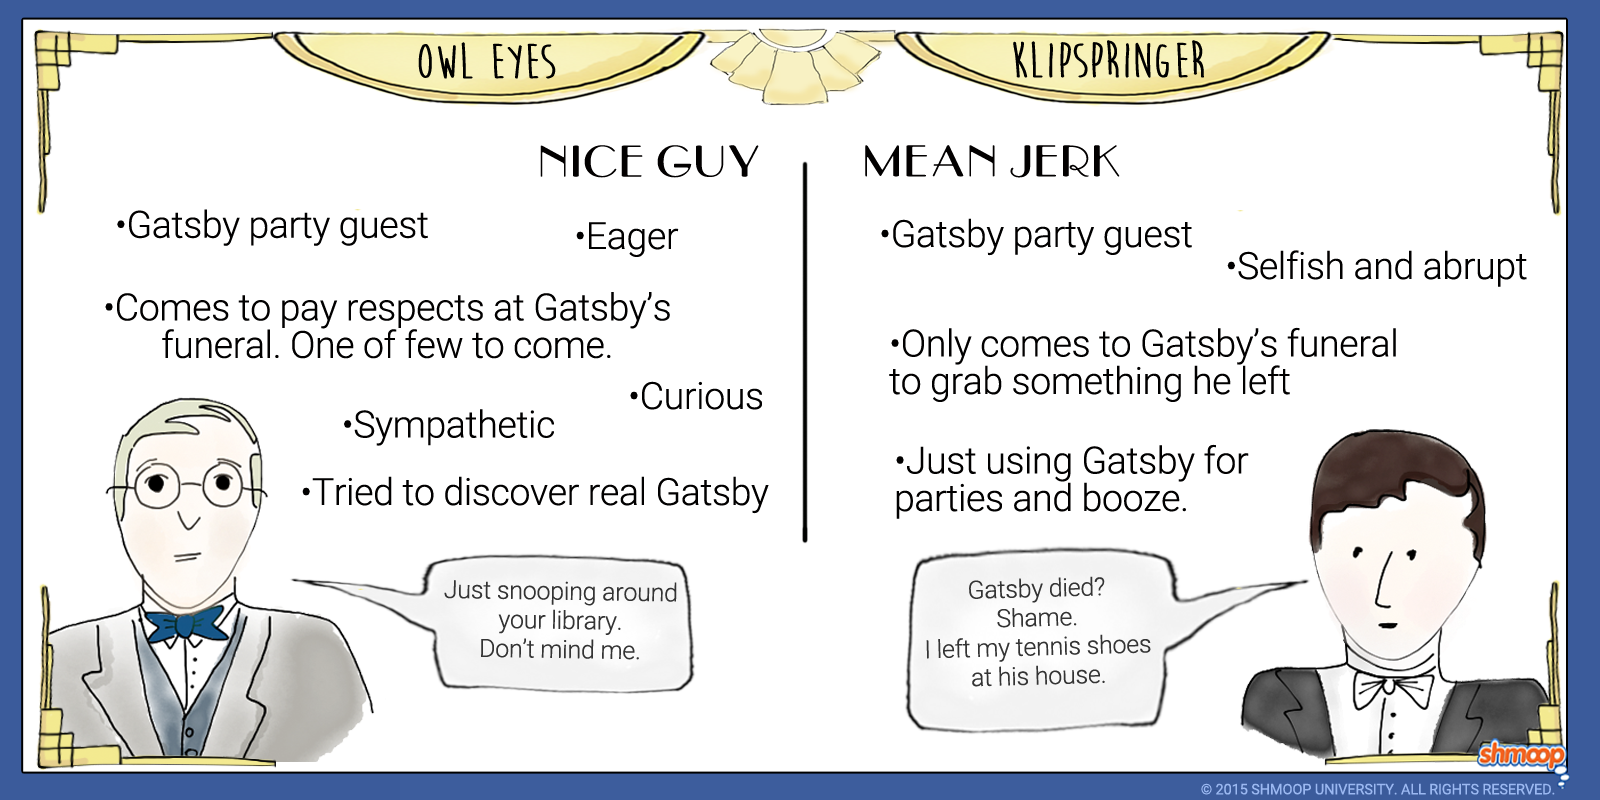 owl eyes and klipspringer in the great gatsby character analysis